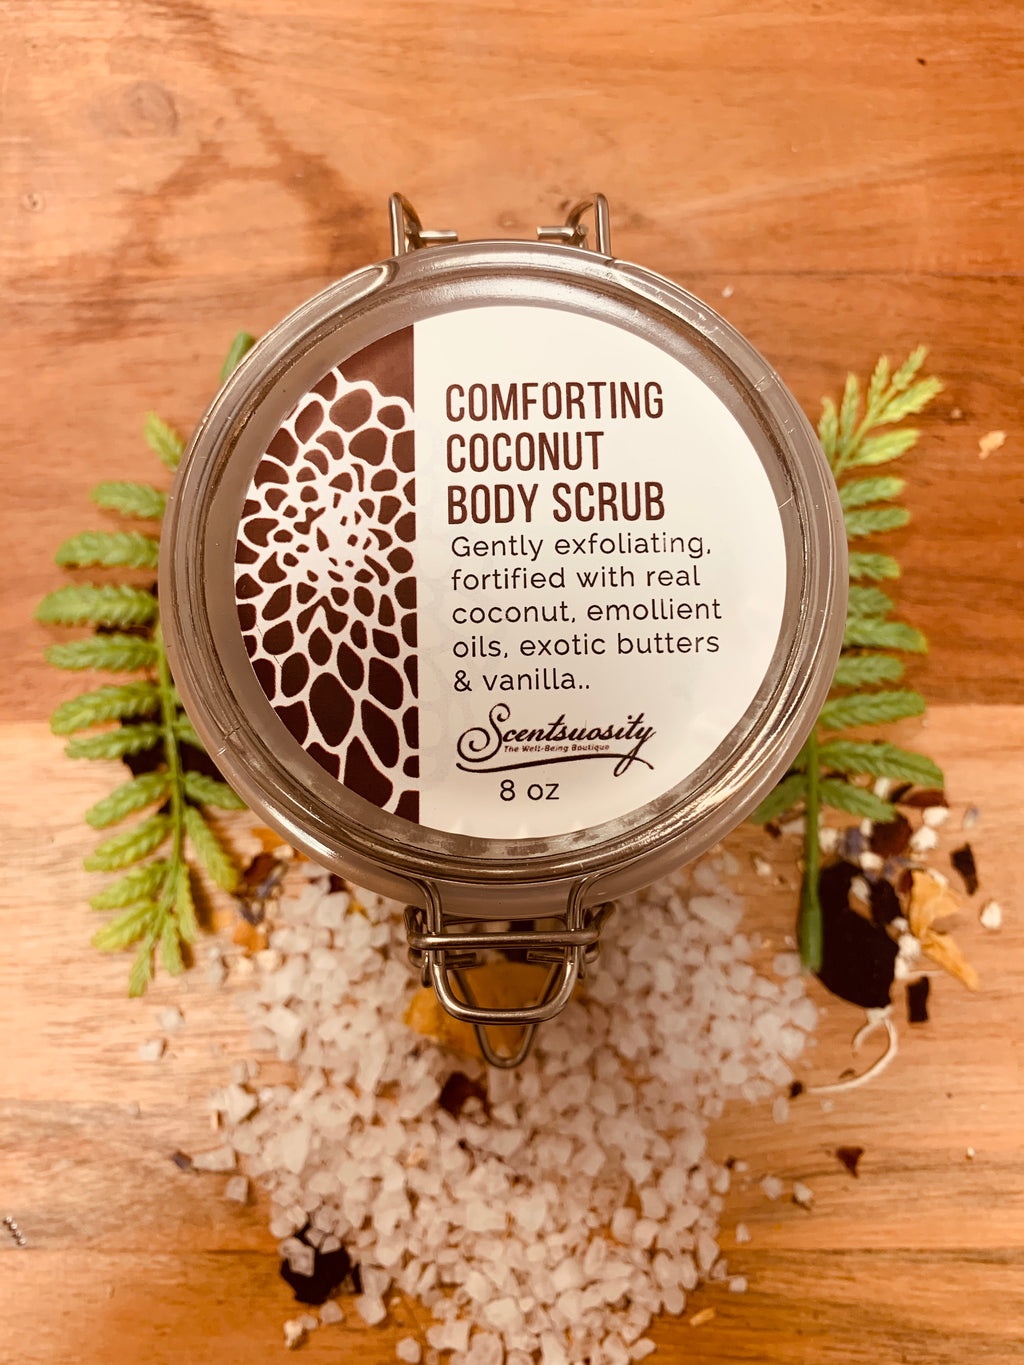 Comforting Coconut Body Butter Scrub